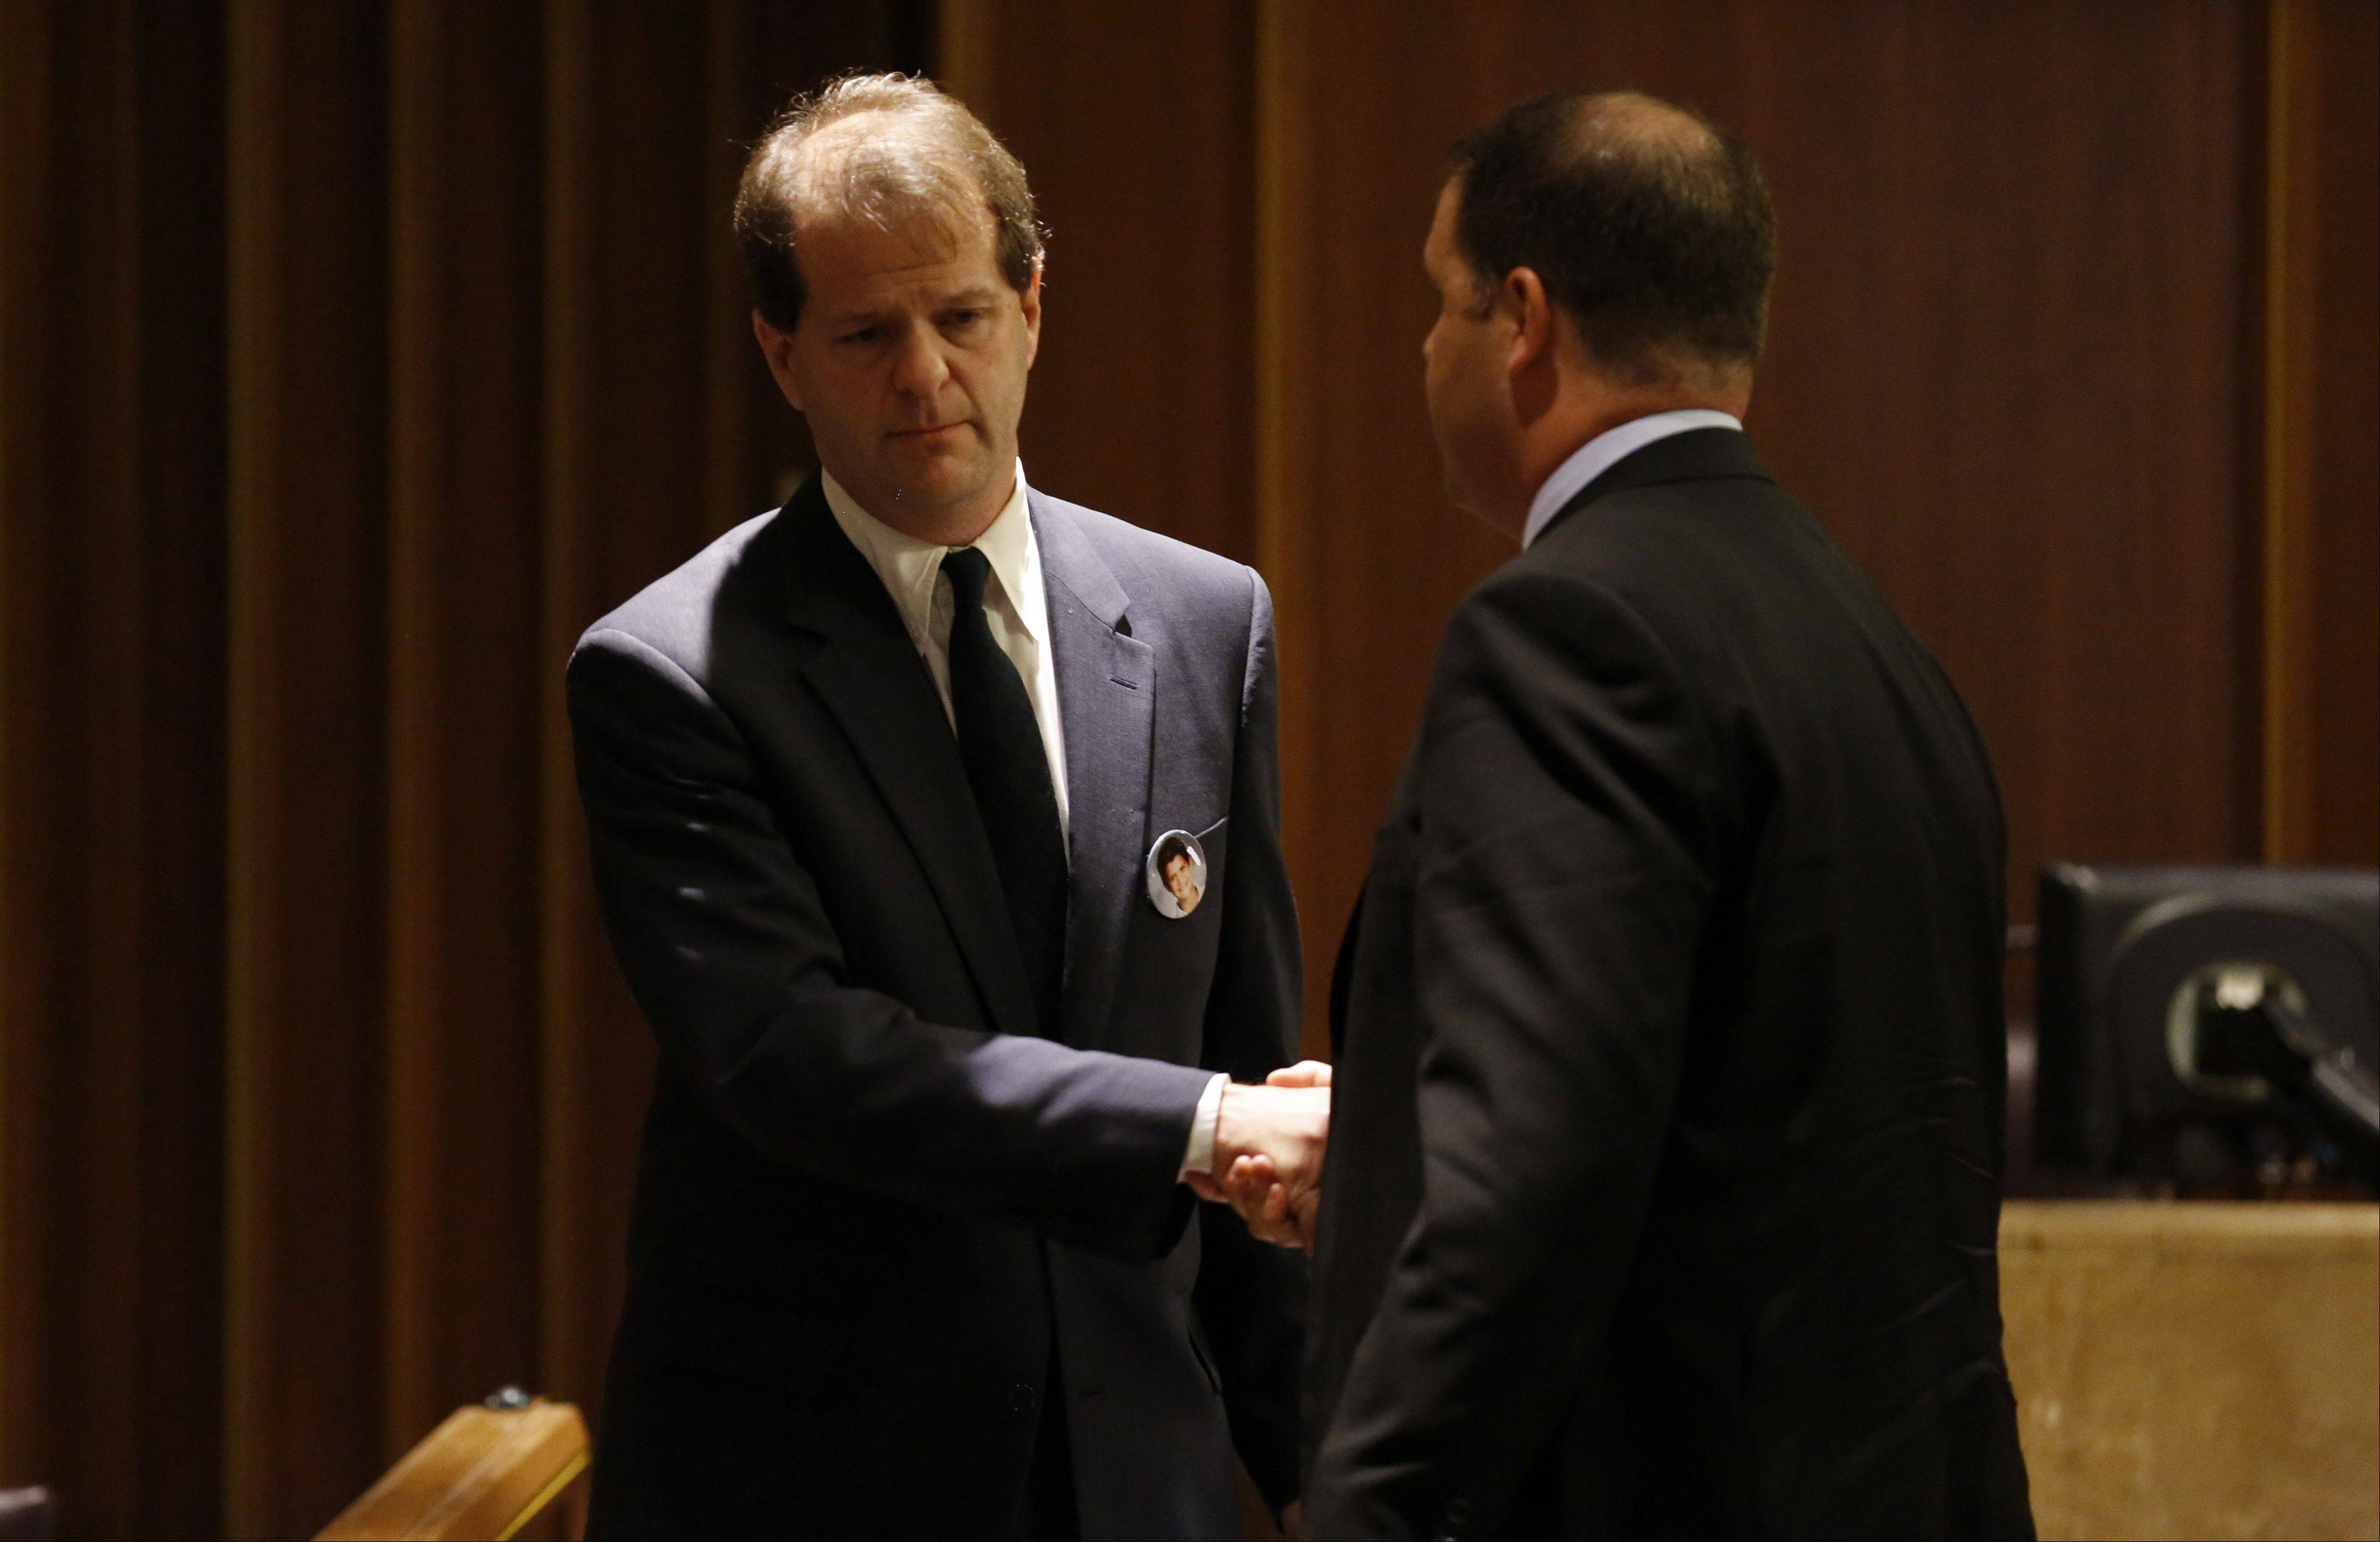 Jim Borcia, father or Tony Borcia, shakes hands with prosecutor Ari Fisz following Borcia's emotional testimony at the recent sentencing hearing for David Hatyina at the Lake County Courthouse in Waukegan. Gov. Pat Quinn is set to sign legislation inspired by Tony Borcia's death.